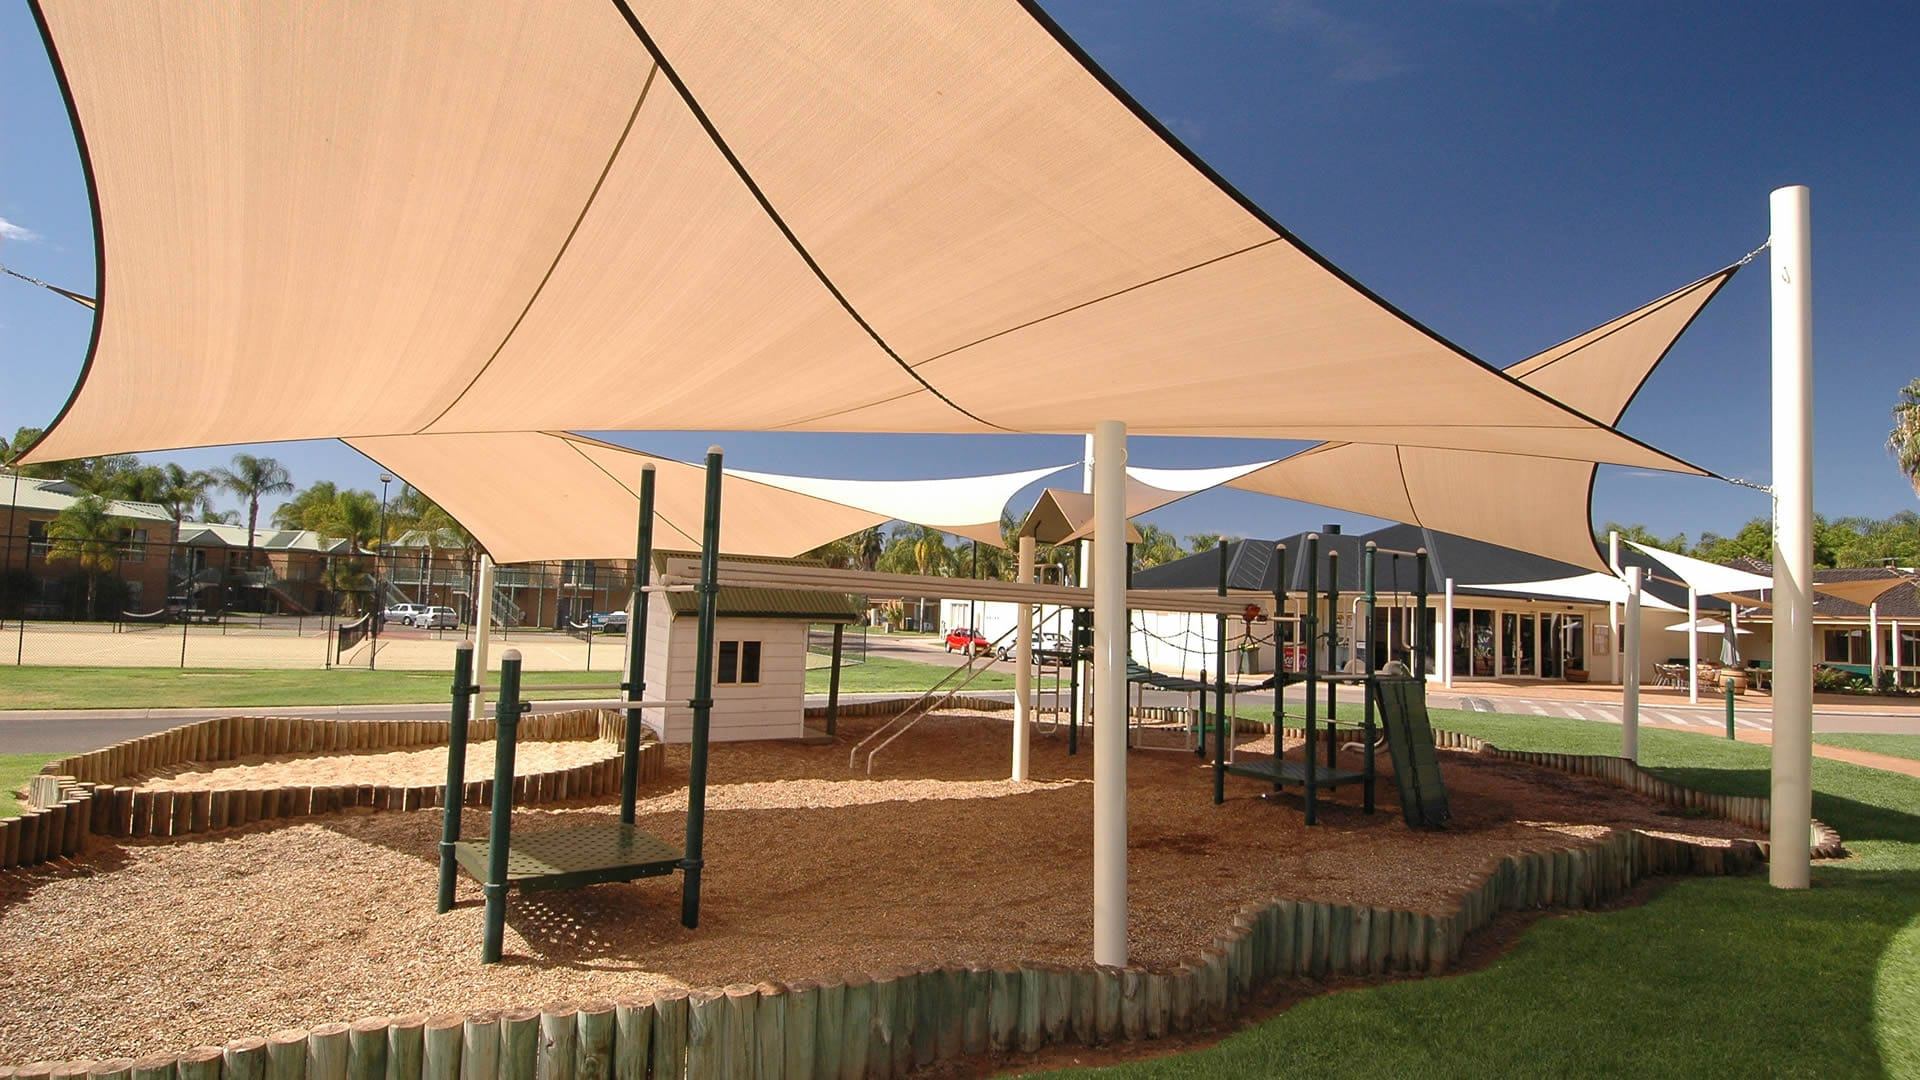 Playground facilities for the kids | Sunraysia Resort